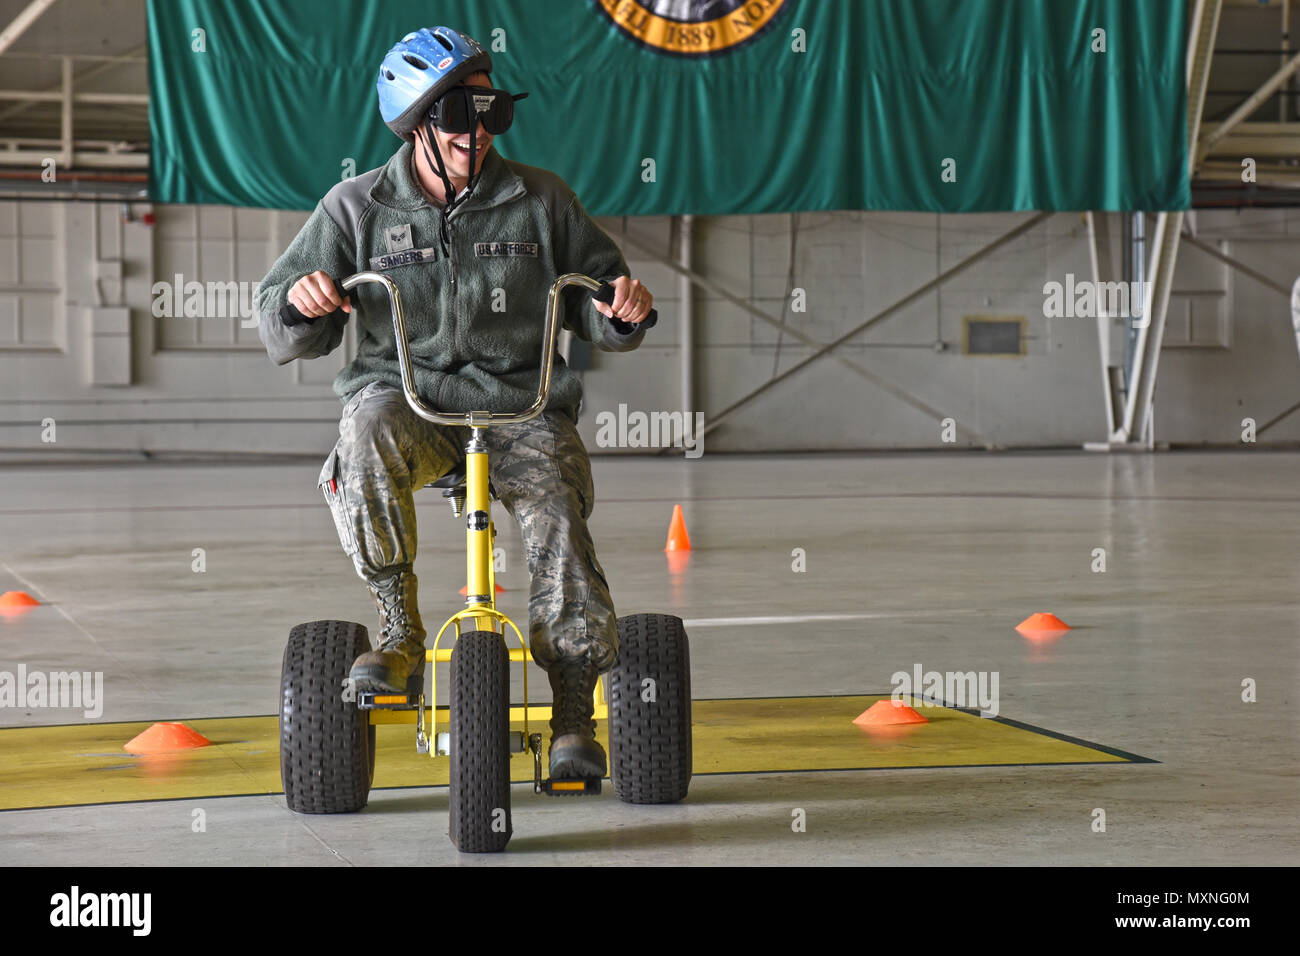 Senior Airman Edwin Sanders, 92nd Aircraft Maintenance Squadron aerospace propulsion journeyman, participates in the drunken tricycle obstacle course during the 92nd and 141st Maintenance Group Fall Olympics Nov. 15, 2016, at Fairchild Air Force Base. The obstacle course consisted of numerous gates and pathways to navigate through while wearing drunk goggles that simulated vision of having a blood alcohol content of double the legal limit. (U.S. Air Force photo/Senior Airman Mackenzie Richardson) - Stock Image